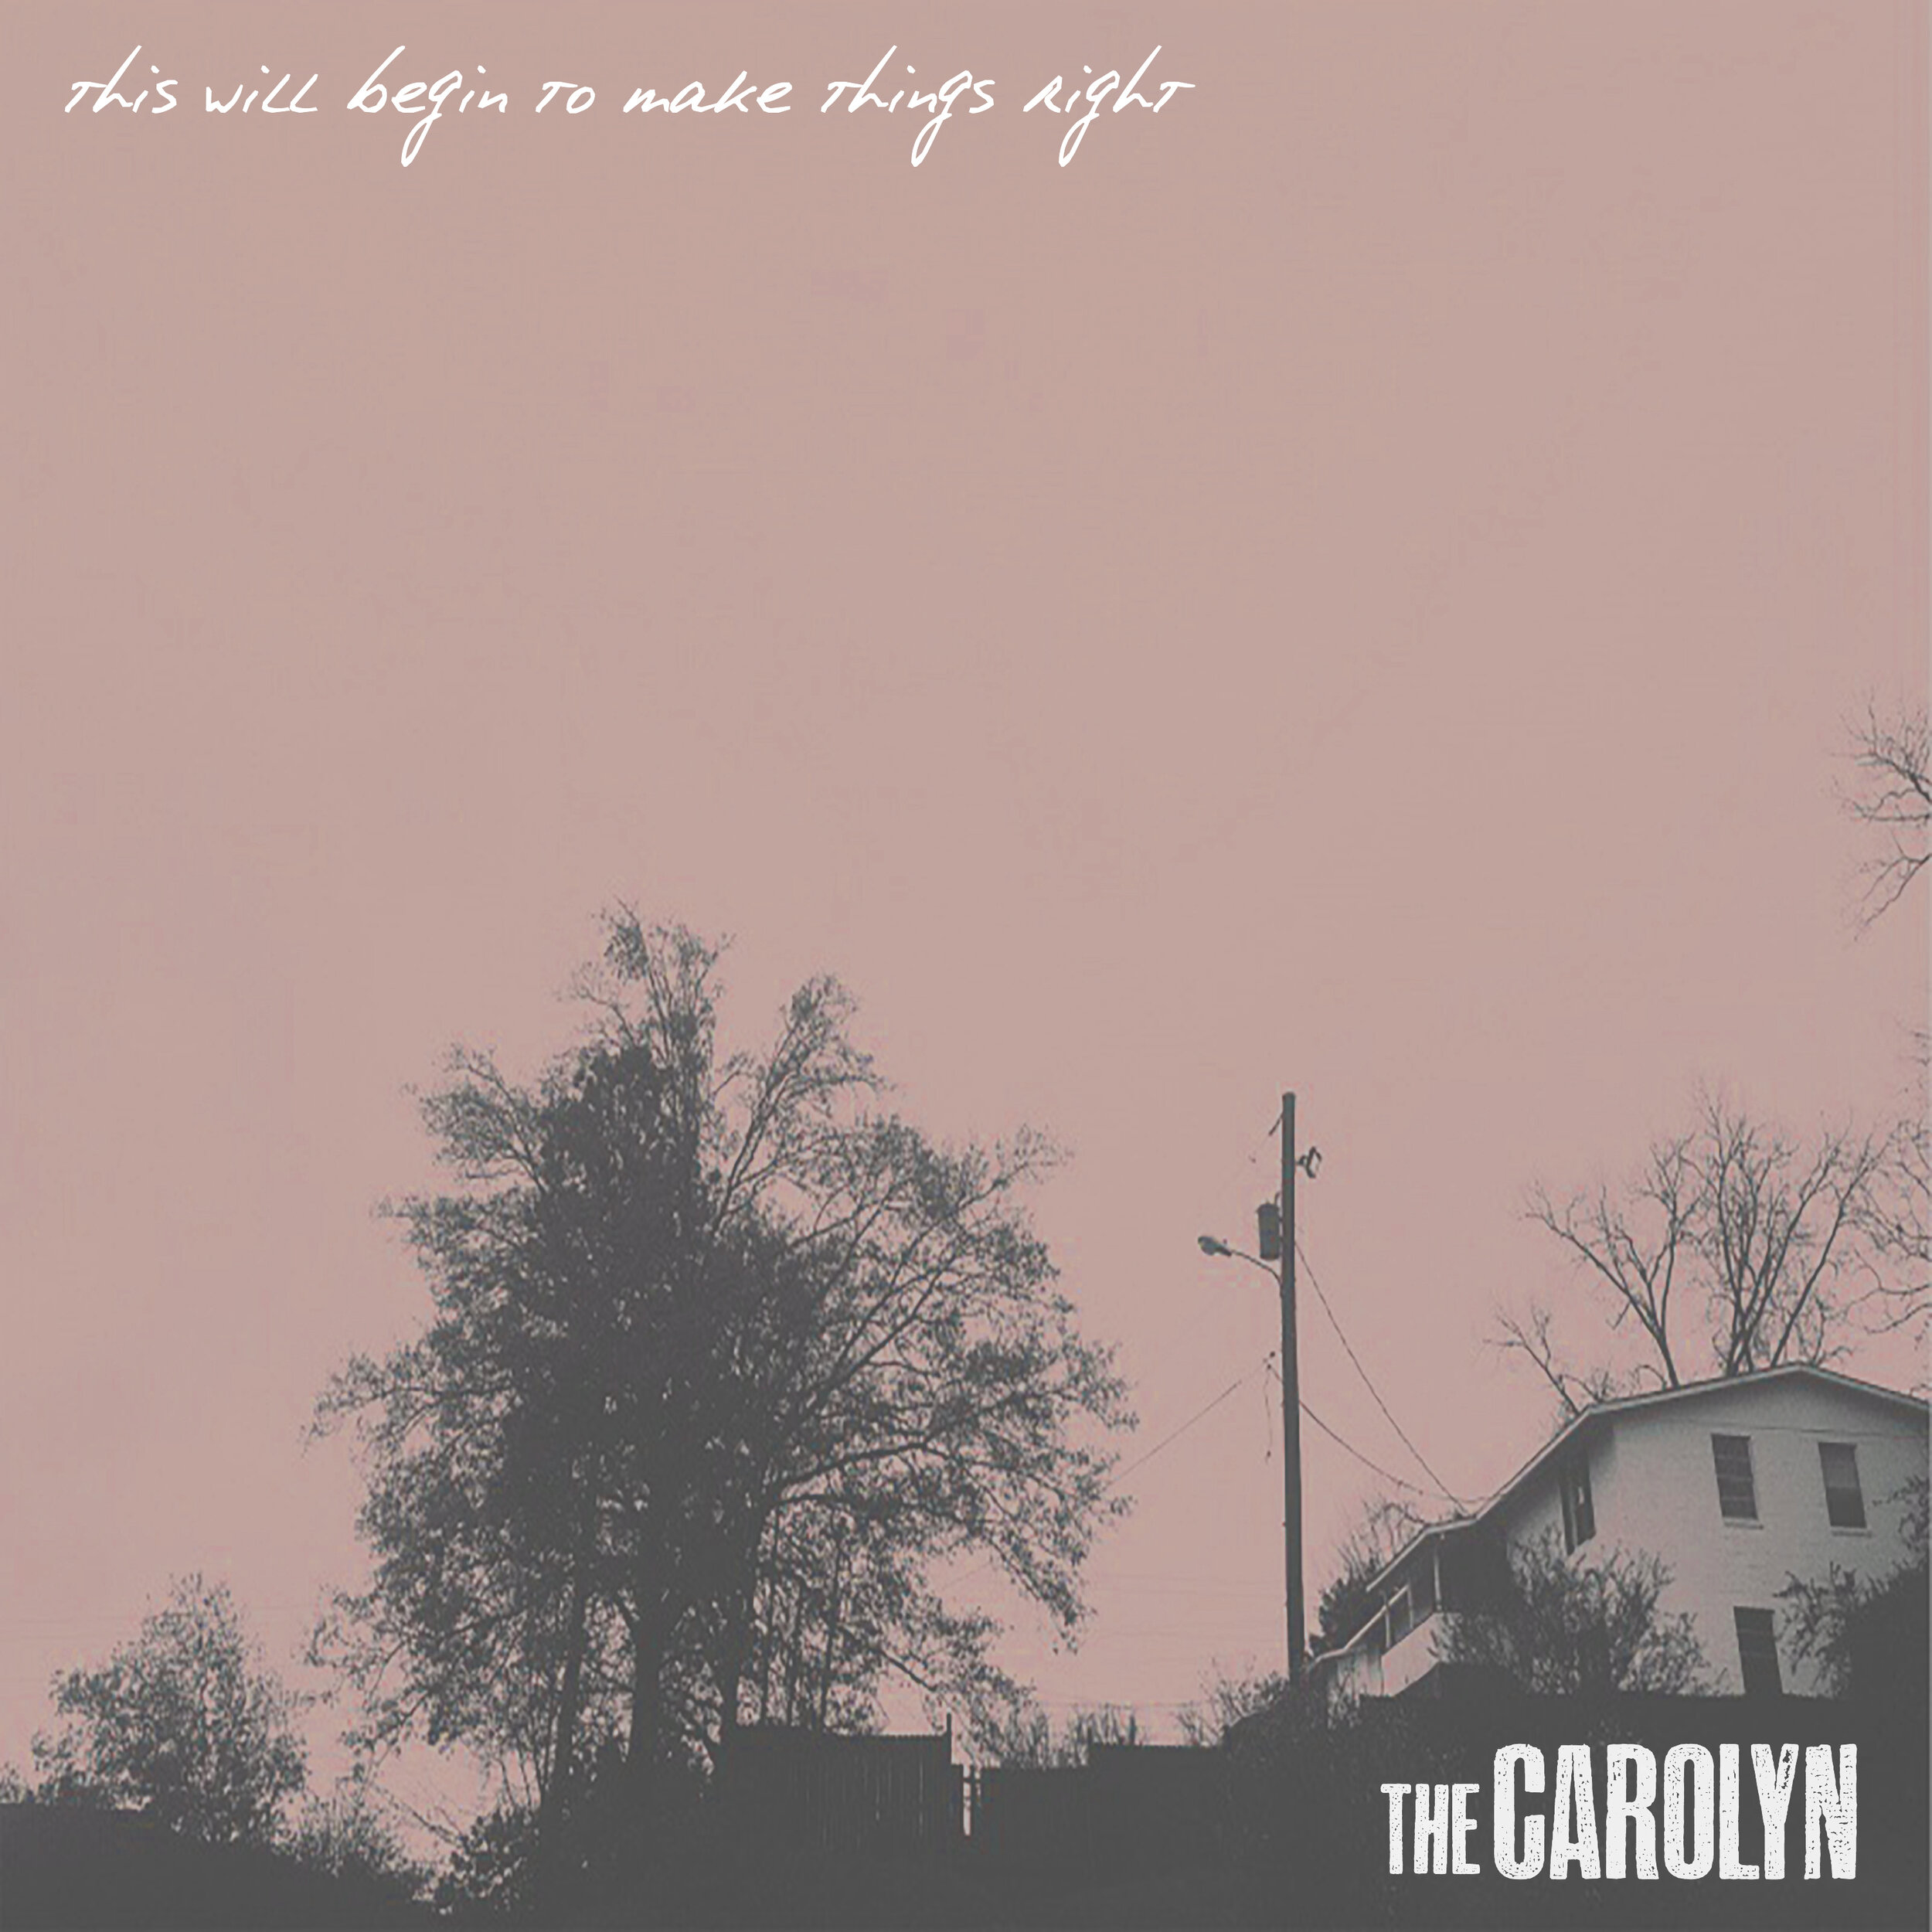 THE CAROLYN - THIS WILL BEGIN TO MAKE THINGS RIGHT (2019)